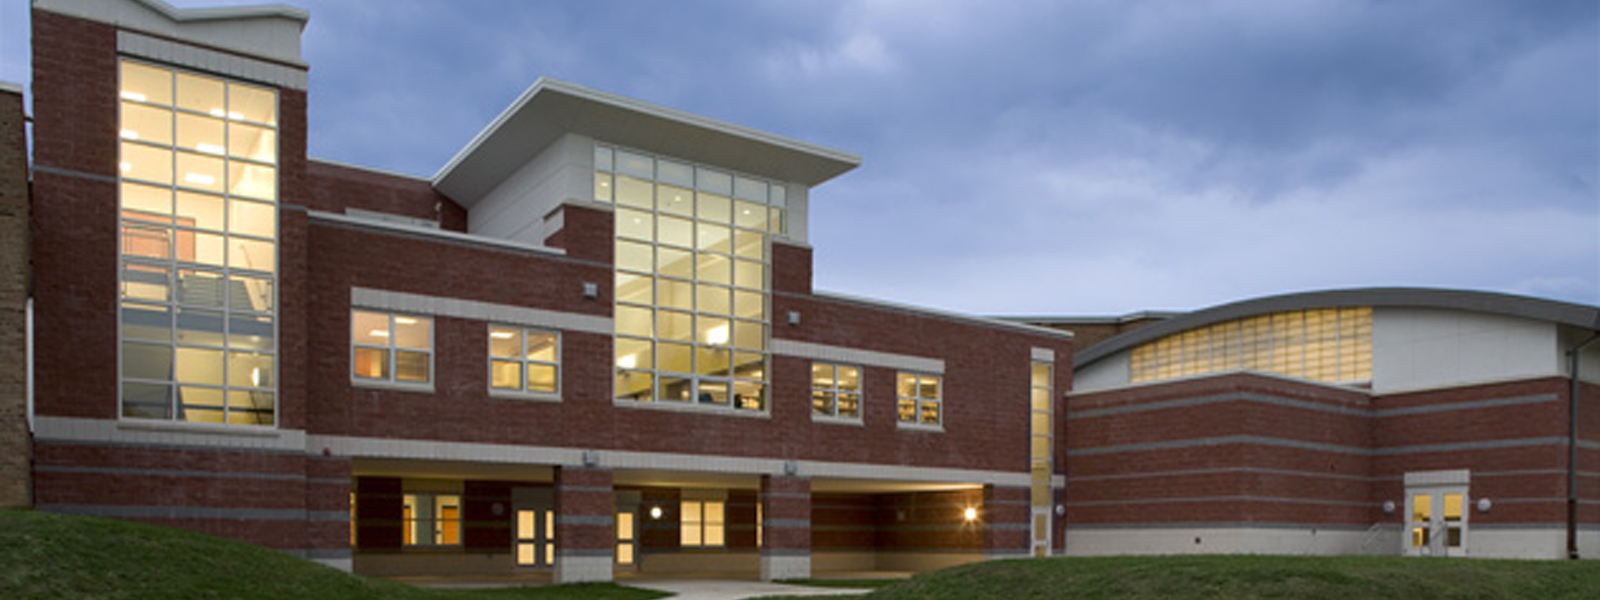 Chatham Middle School